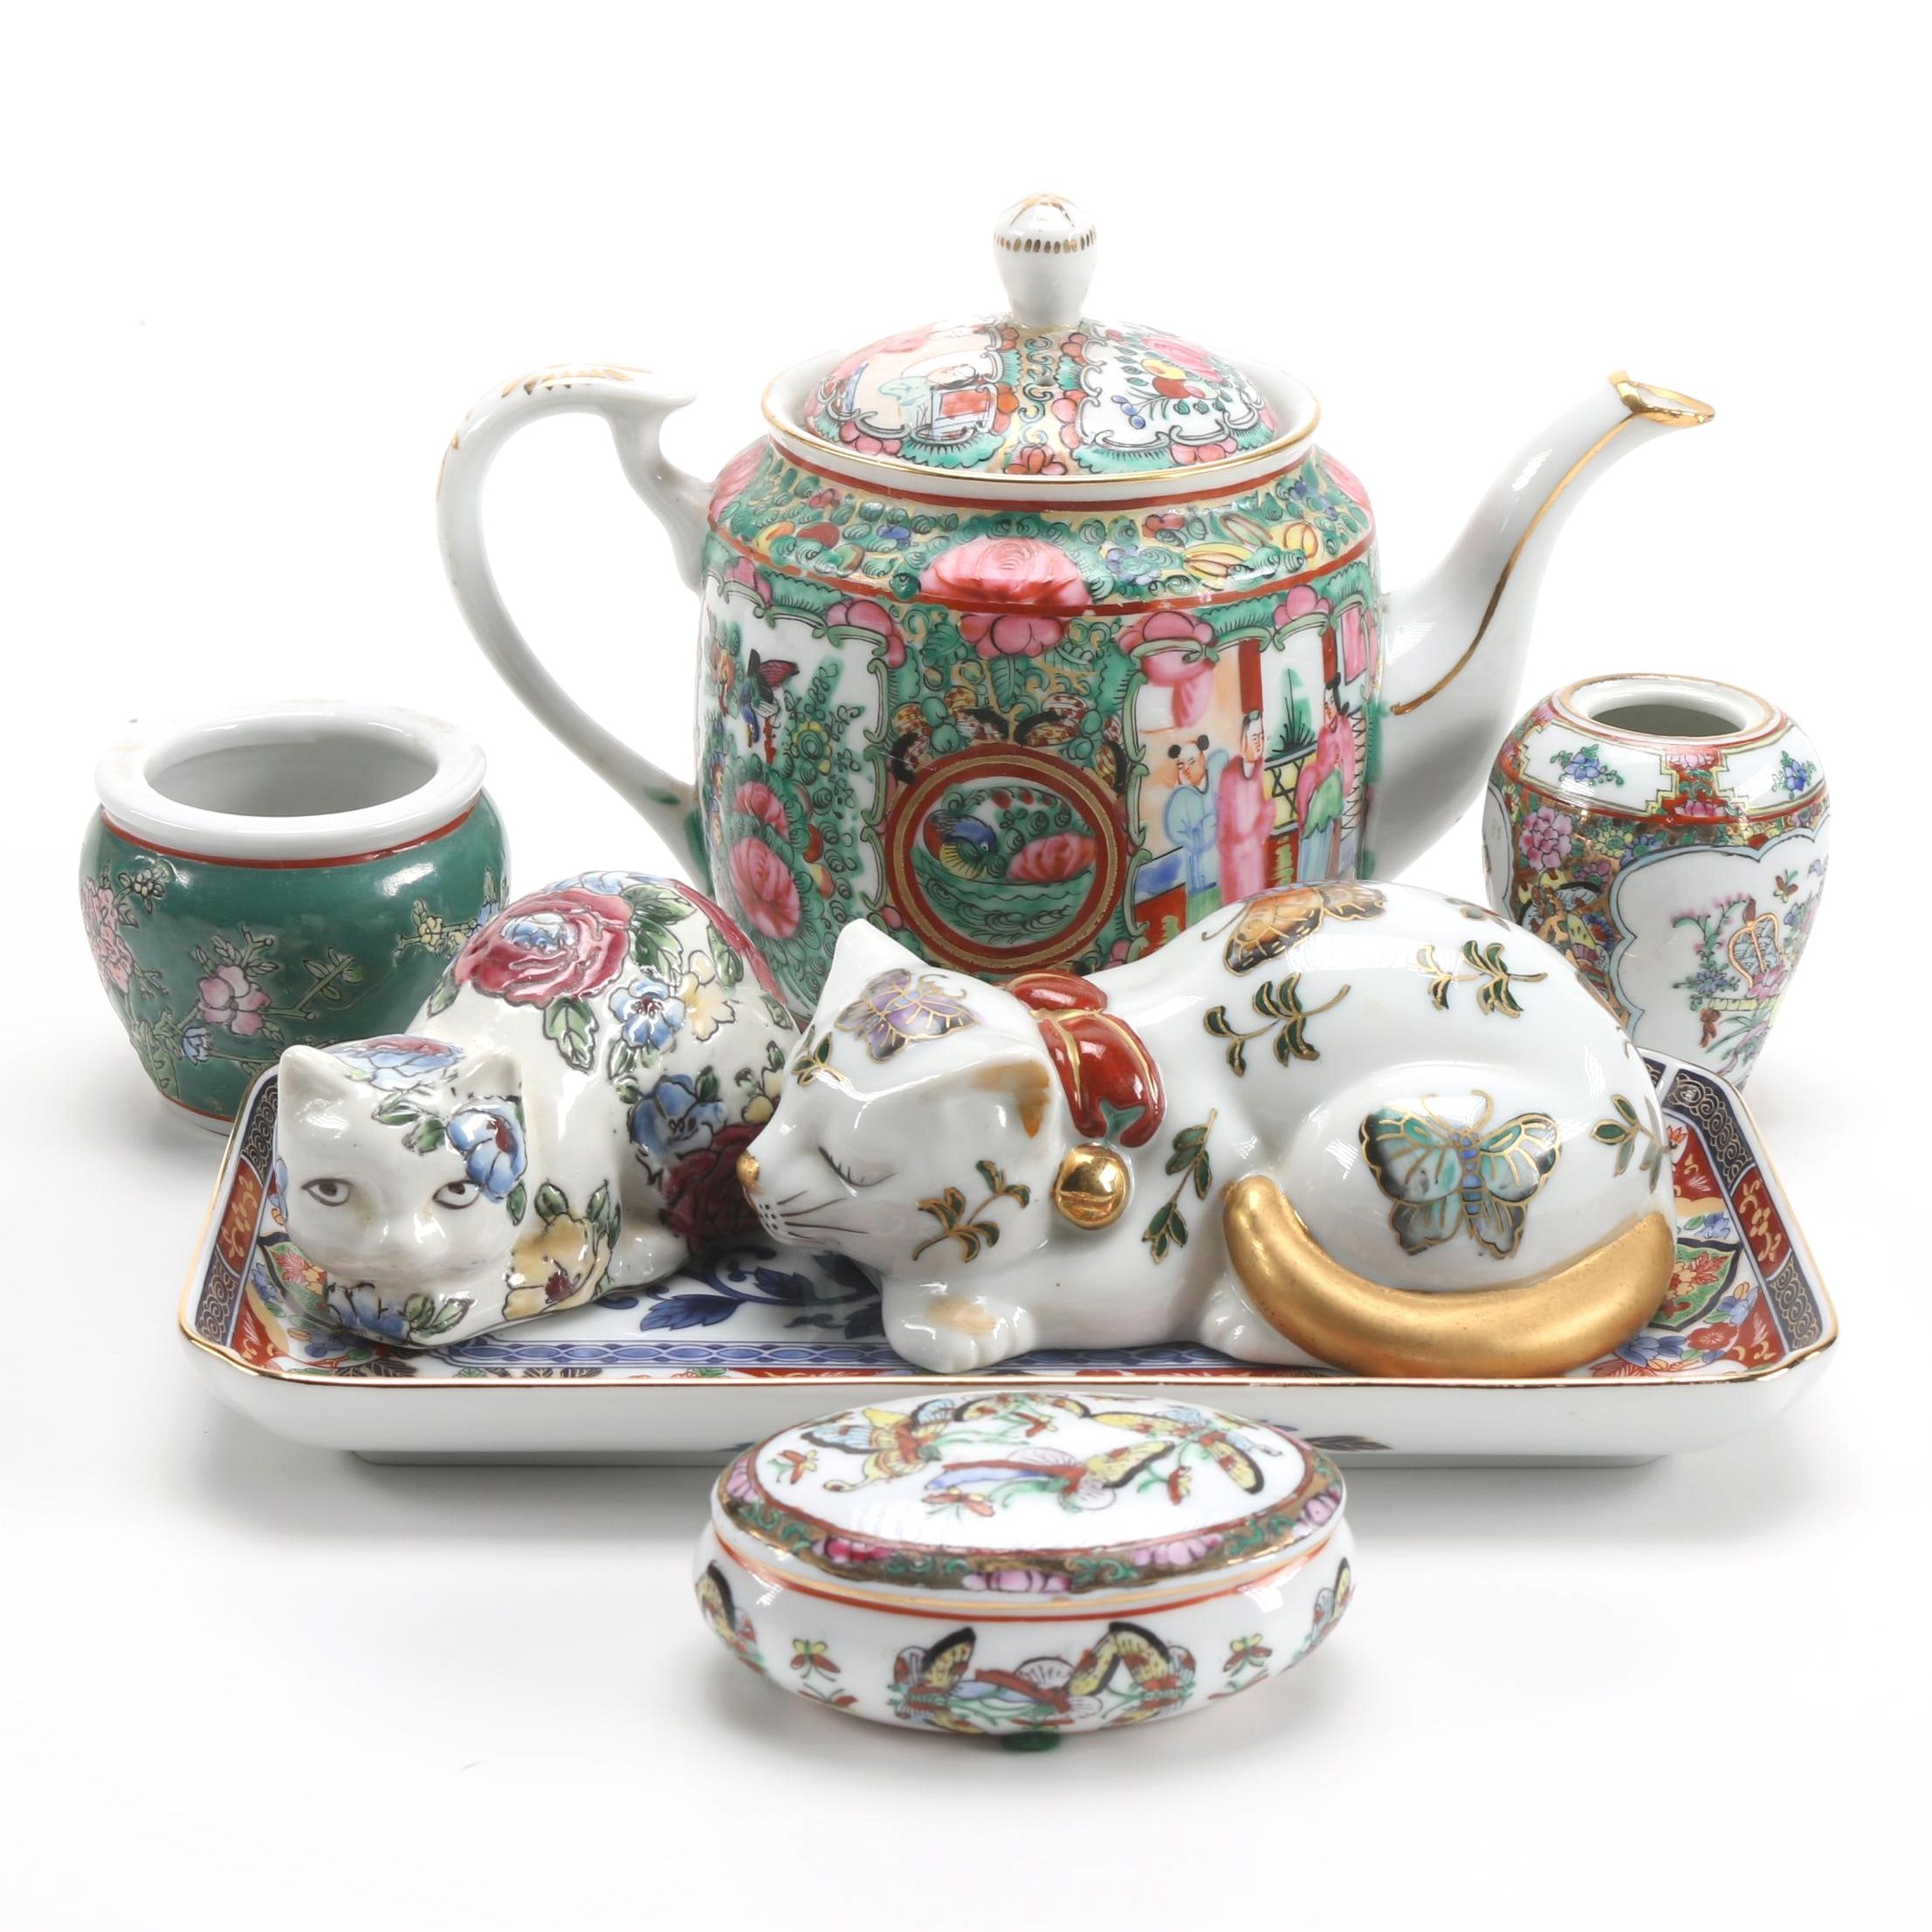 Chinese and Japanese Porcelain Décor Featuring Rose Medallion Teapot